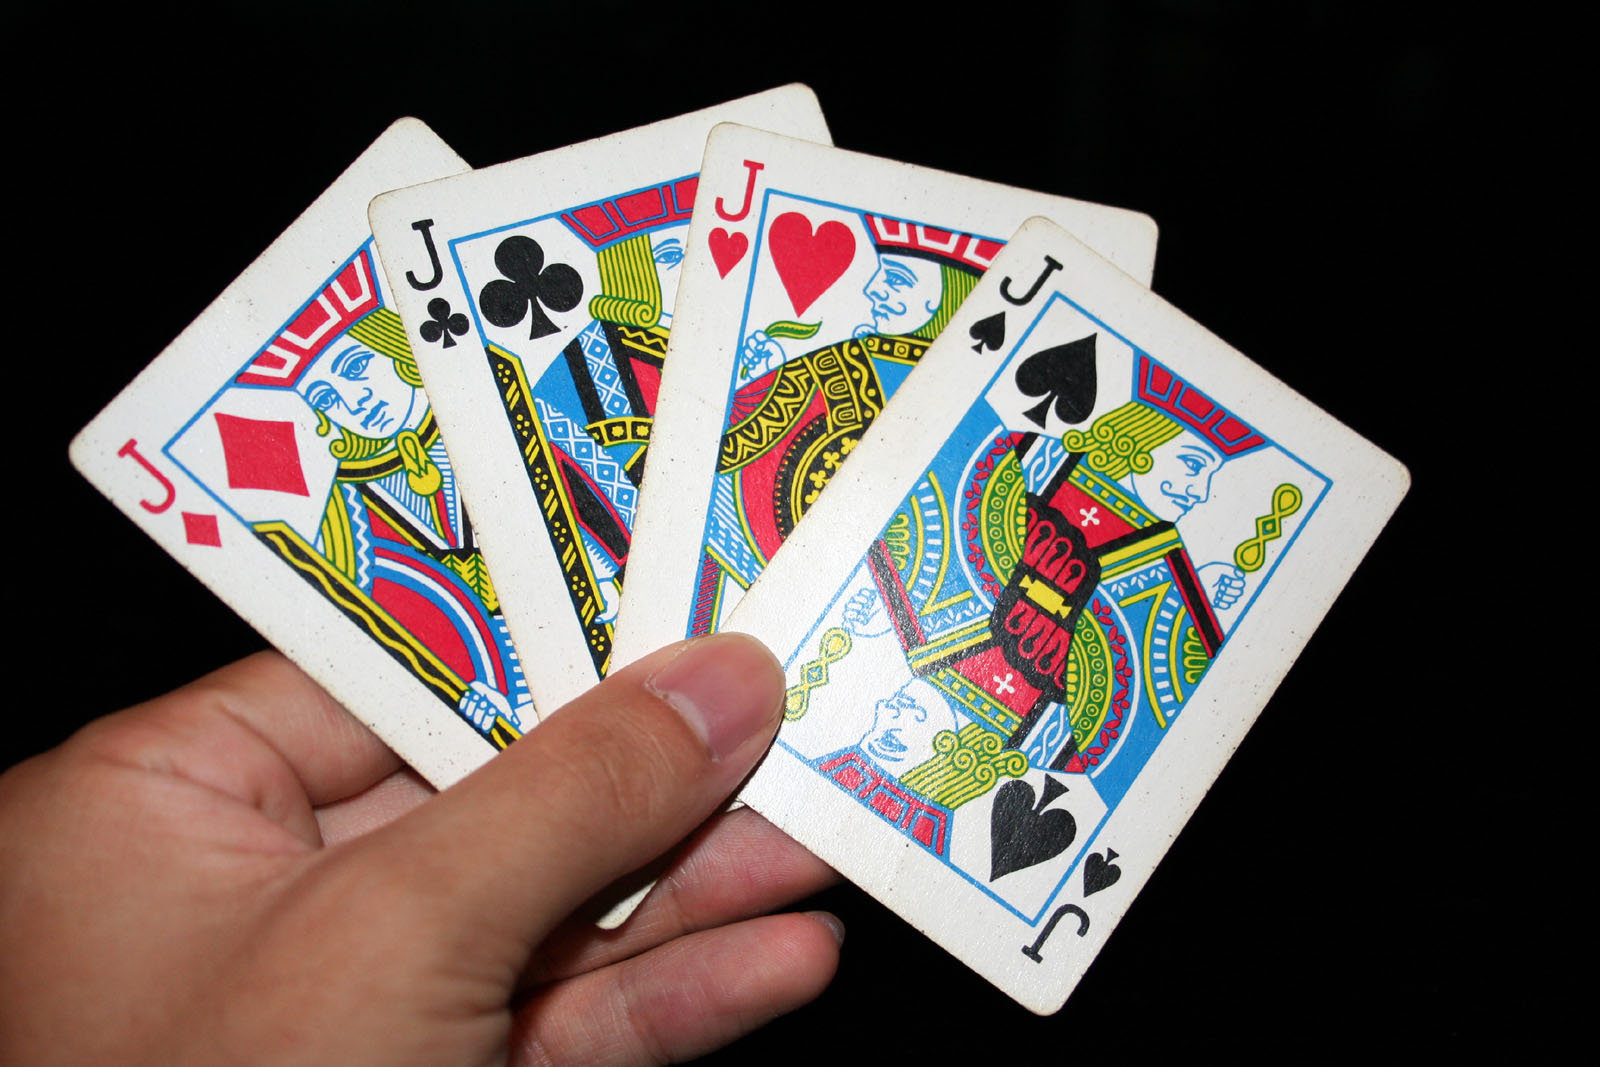 File:Jack playing cards.jpg - Wikimedia Commons